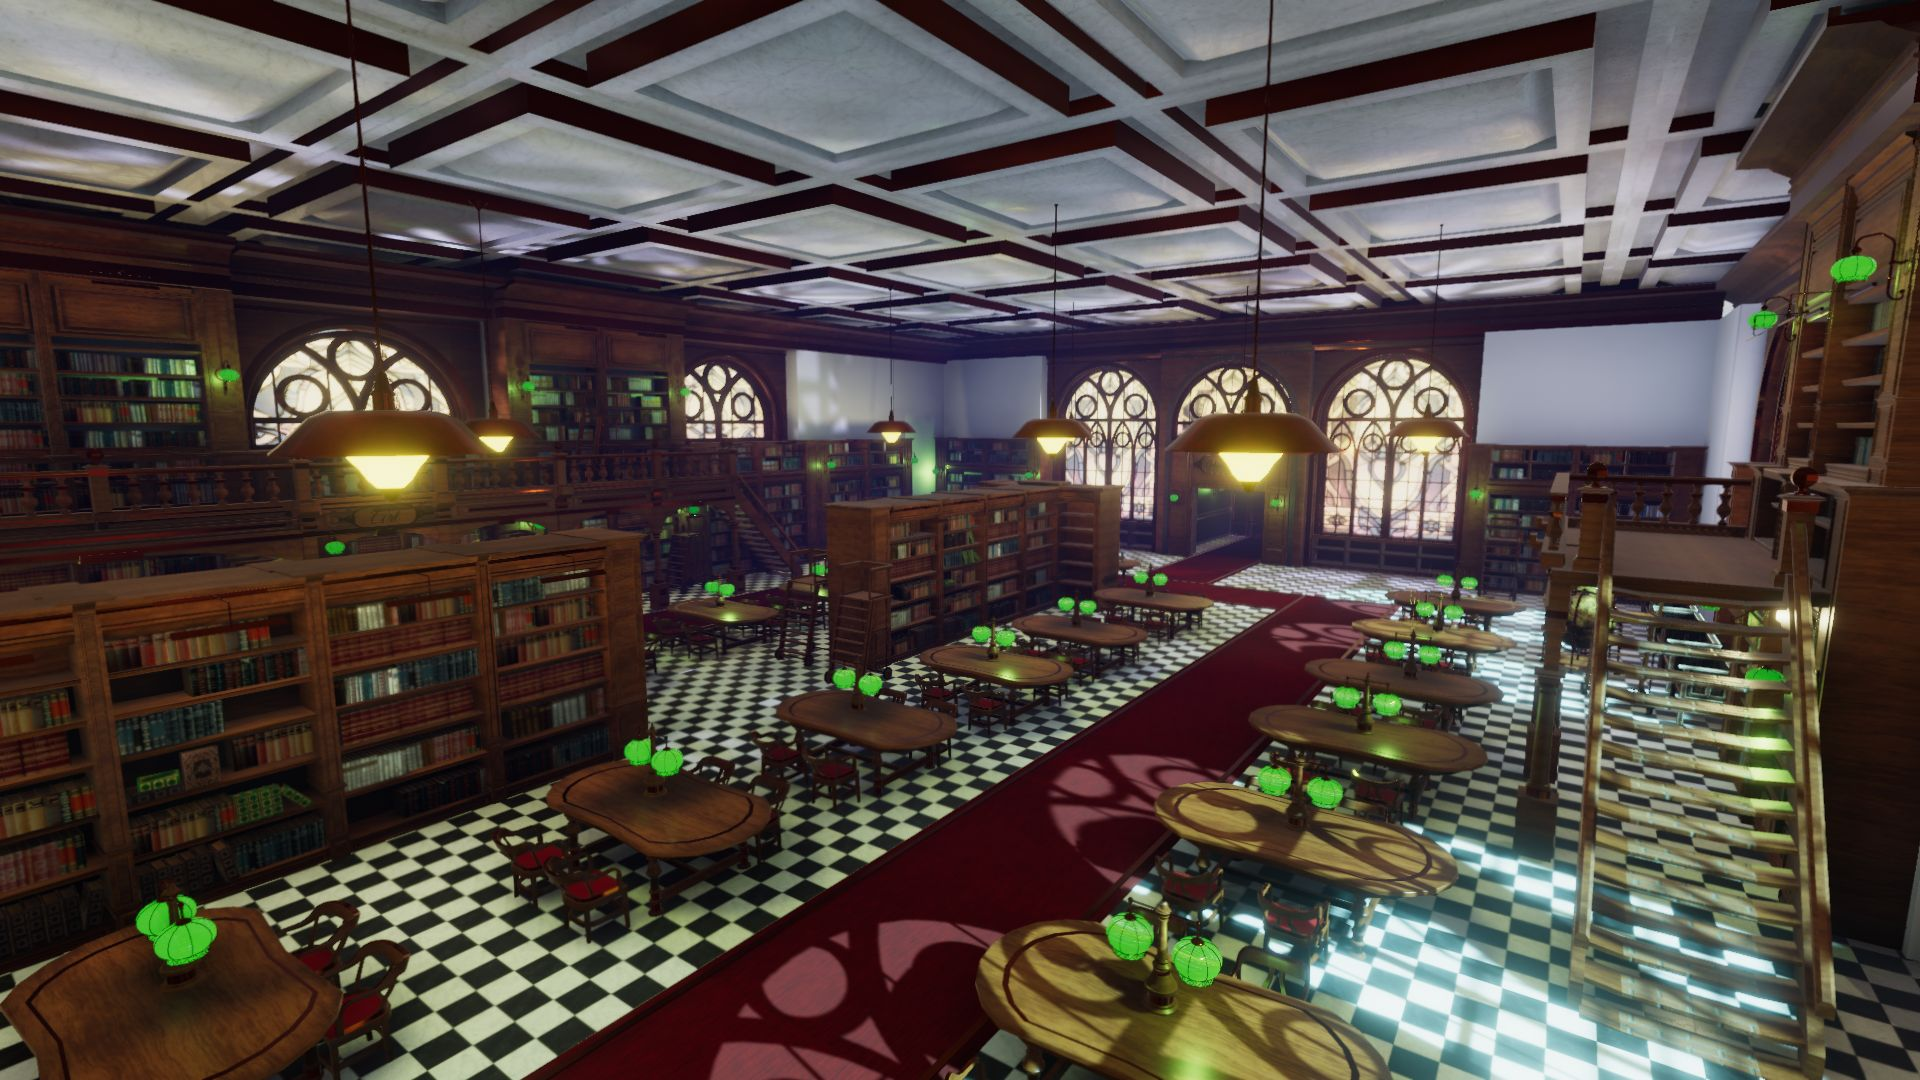 An image showing National Library asset pack, created with Unity Engine.